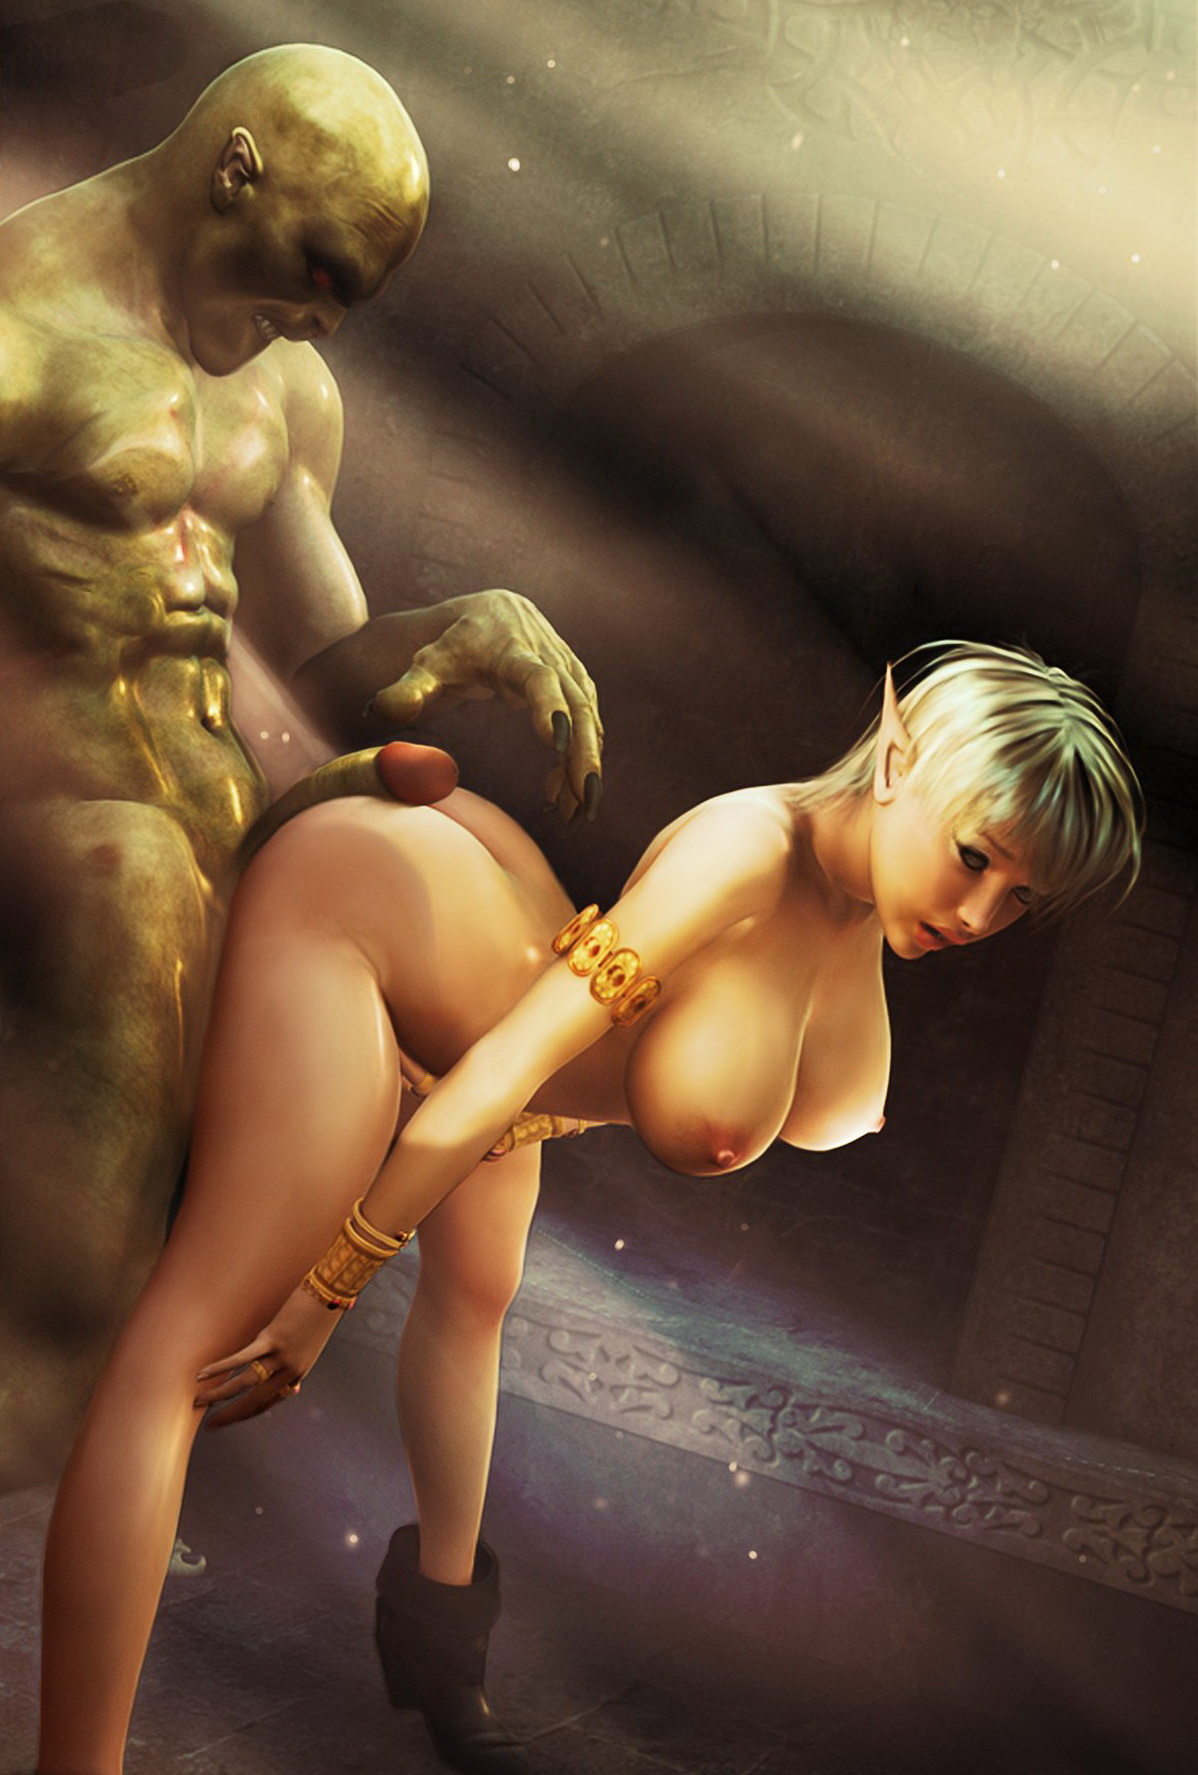 Oblivion porn moives of golden saint guard naked photos